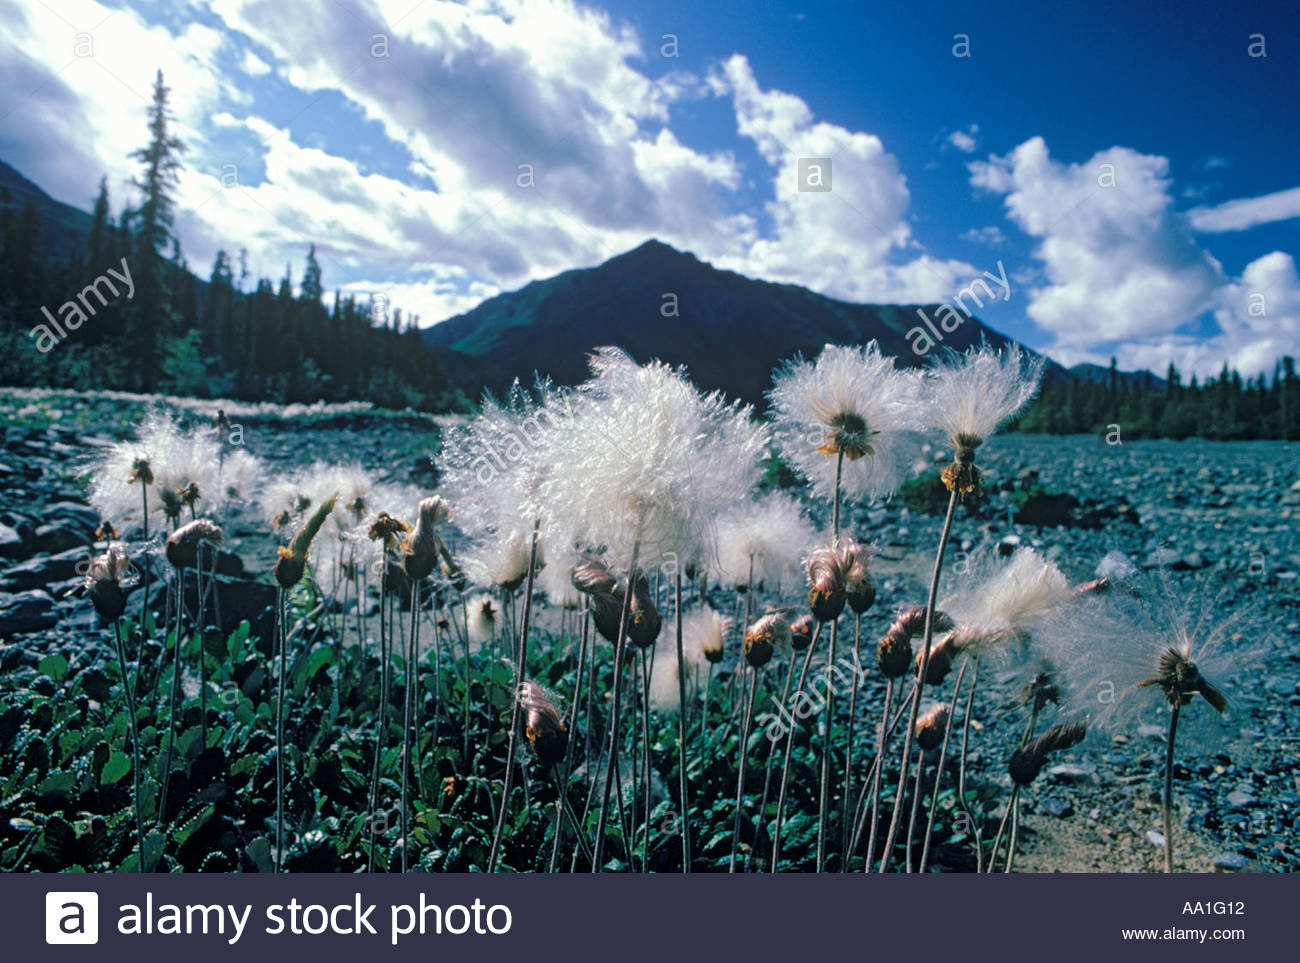 Cottongrass at Congdon Creek in Kluane National Park in Yukon Territory Canada - Stock Image